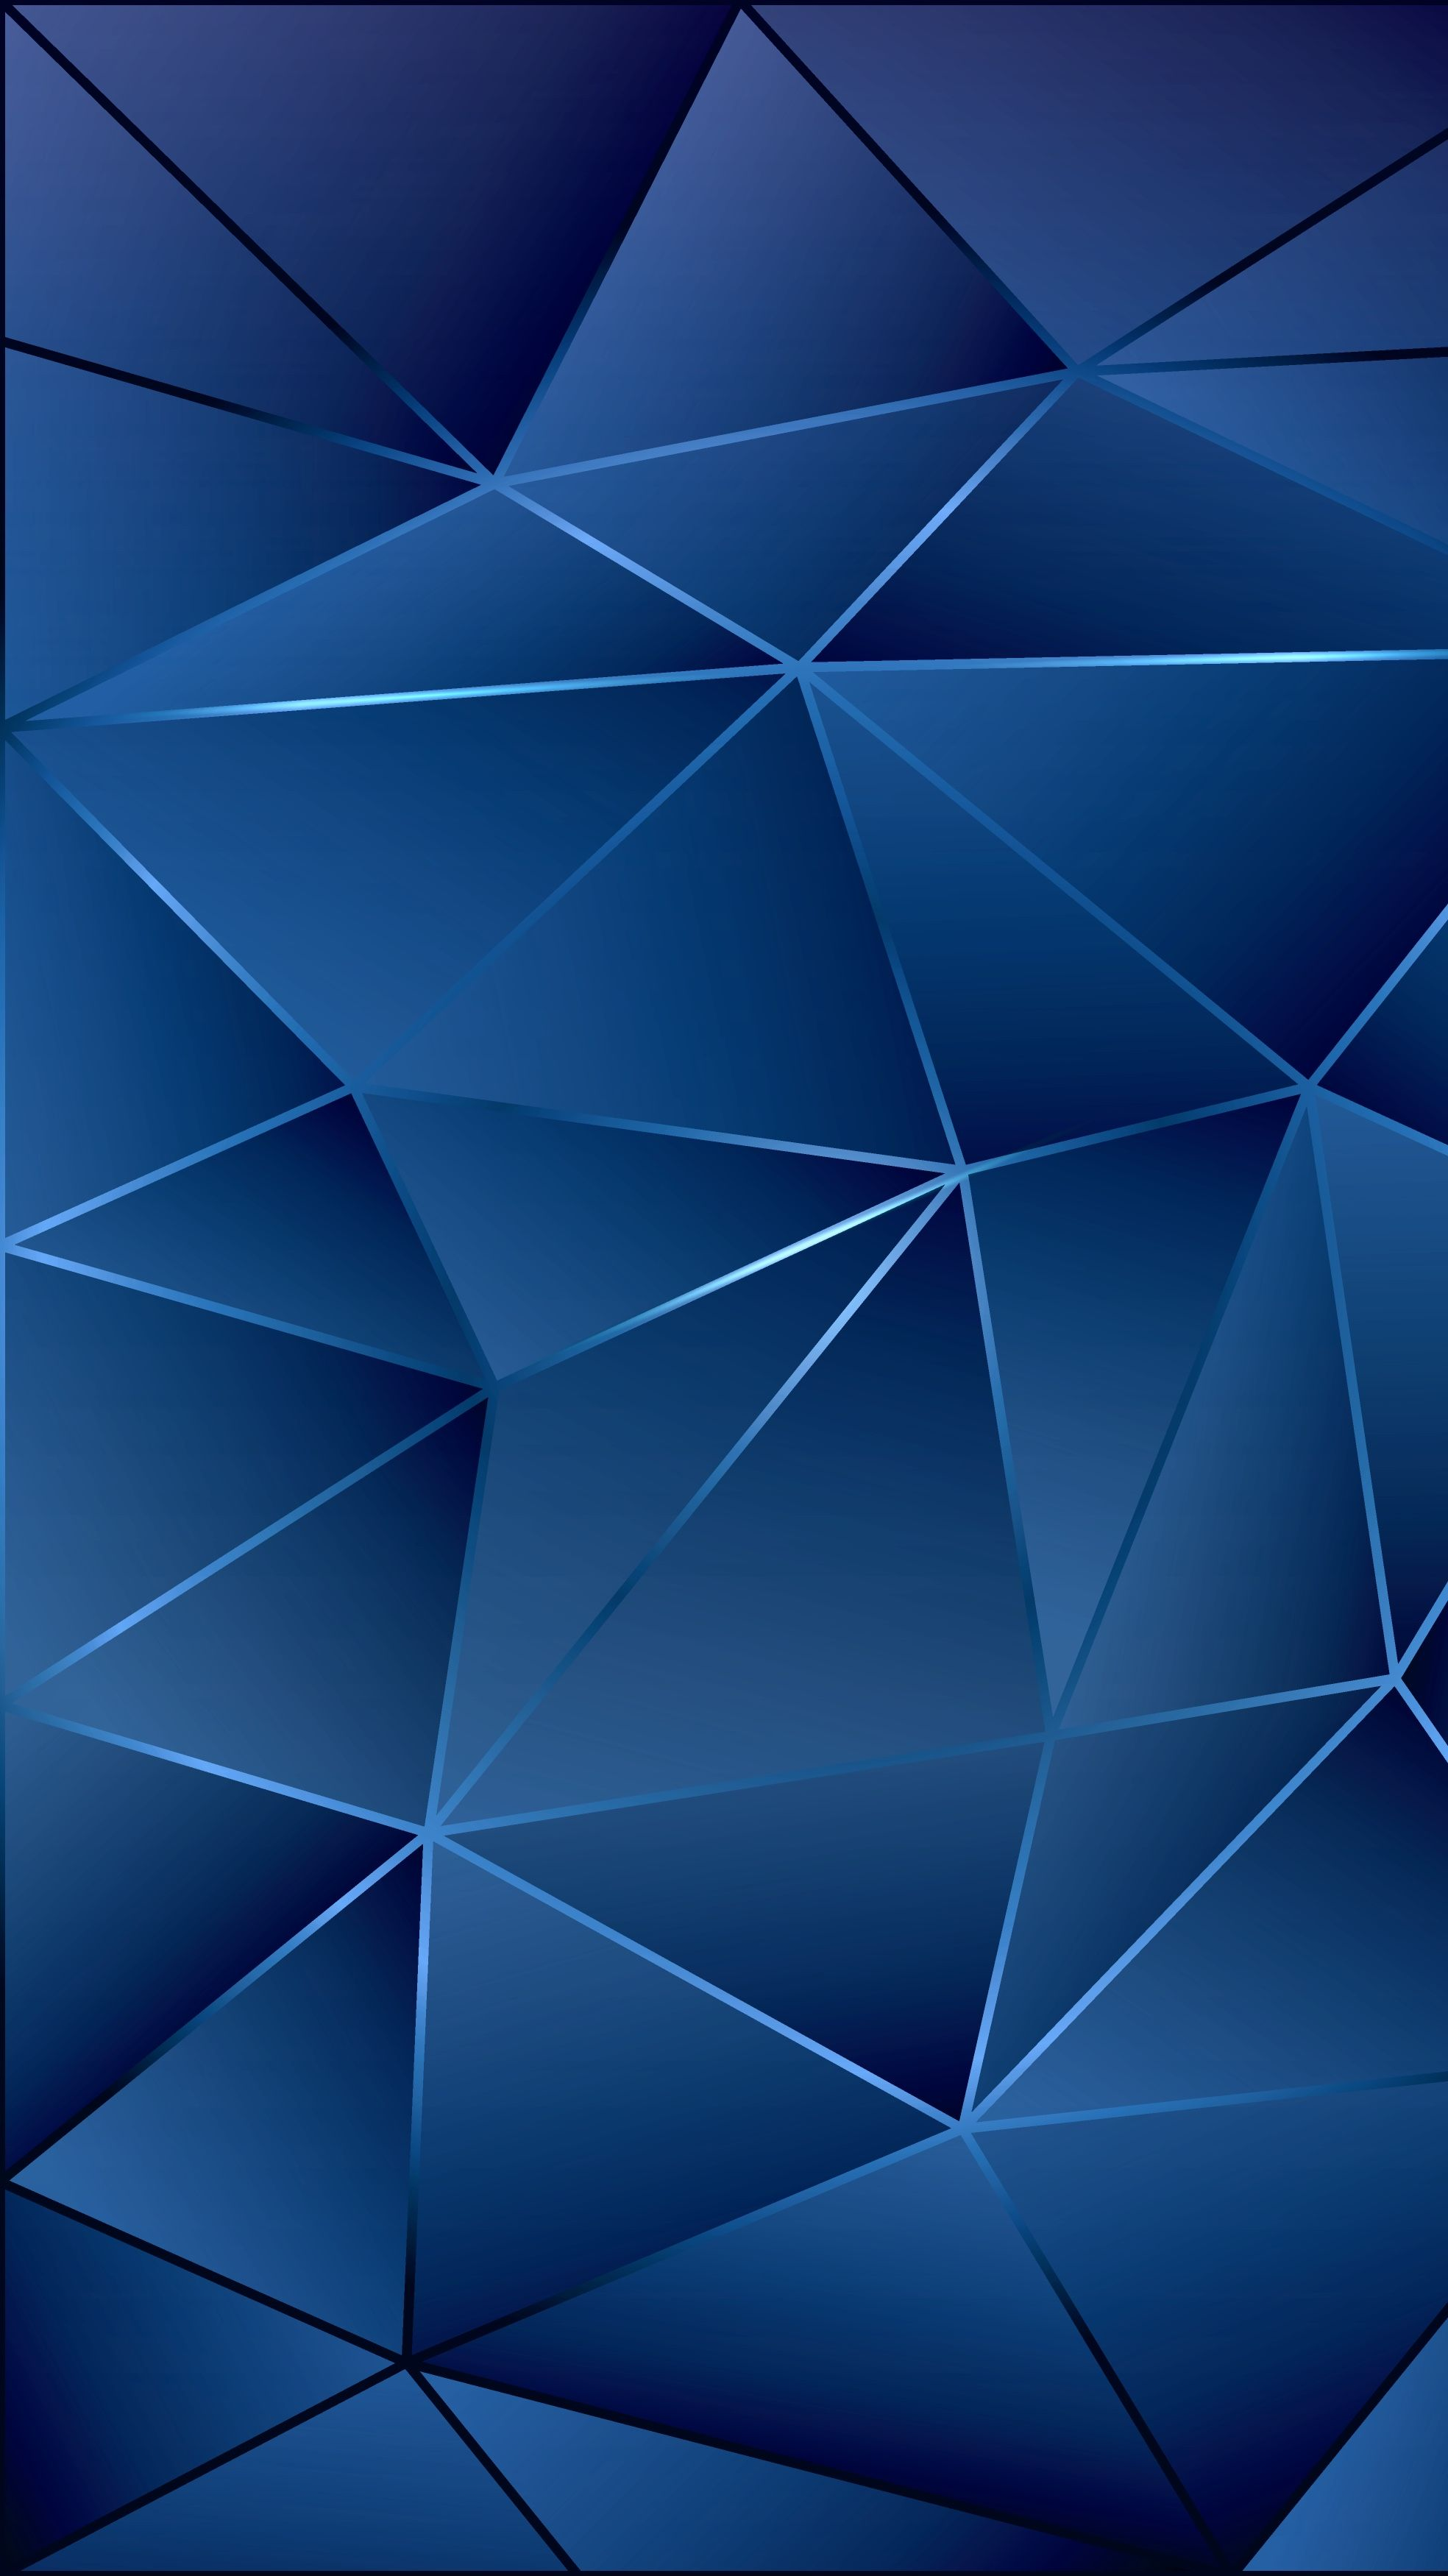 Blue Wall Geometric Pattern Abstract Texture Background